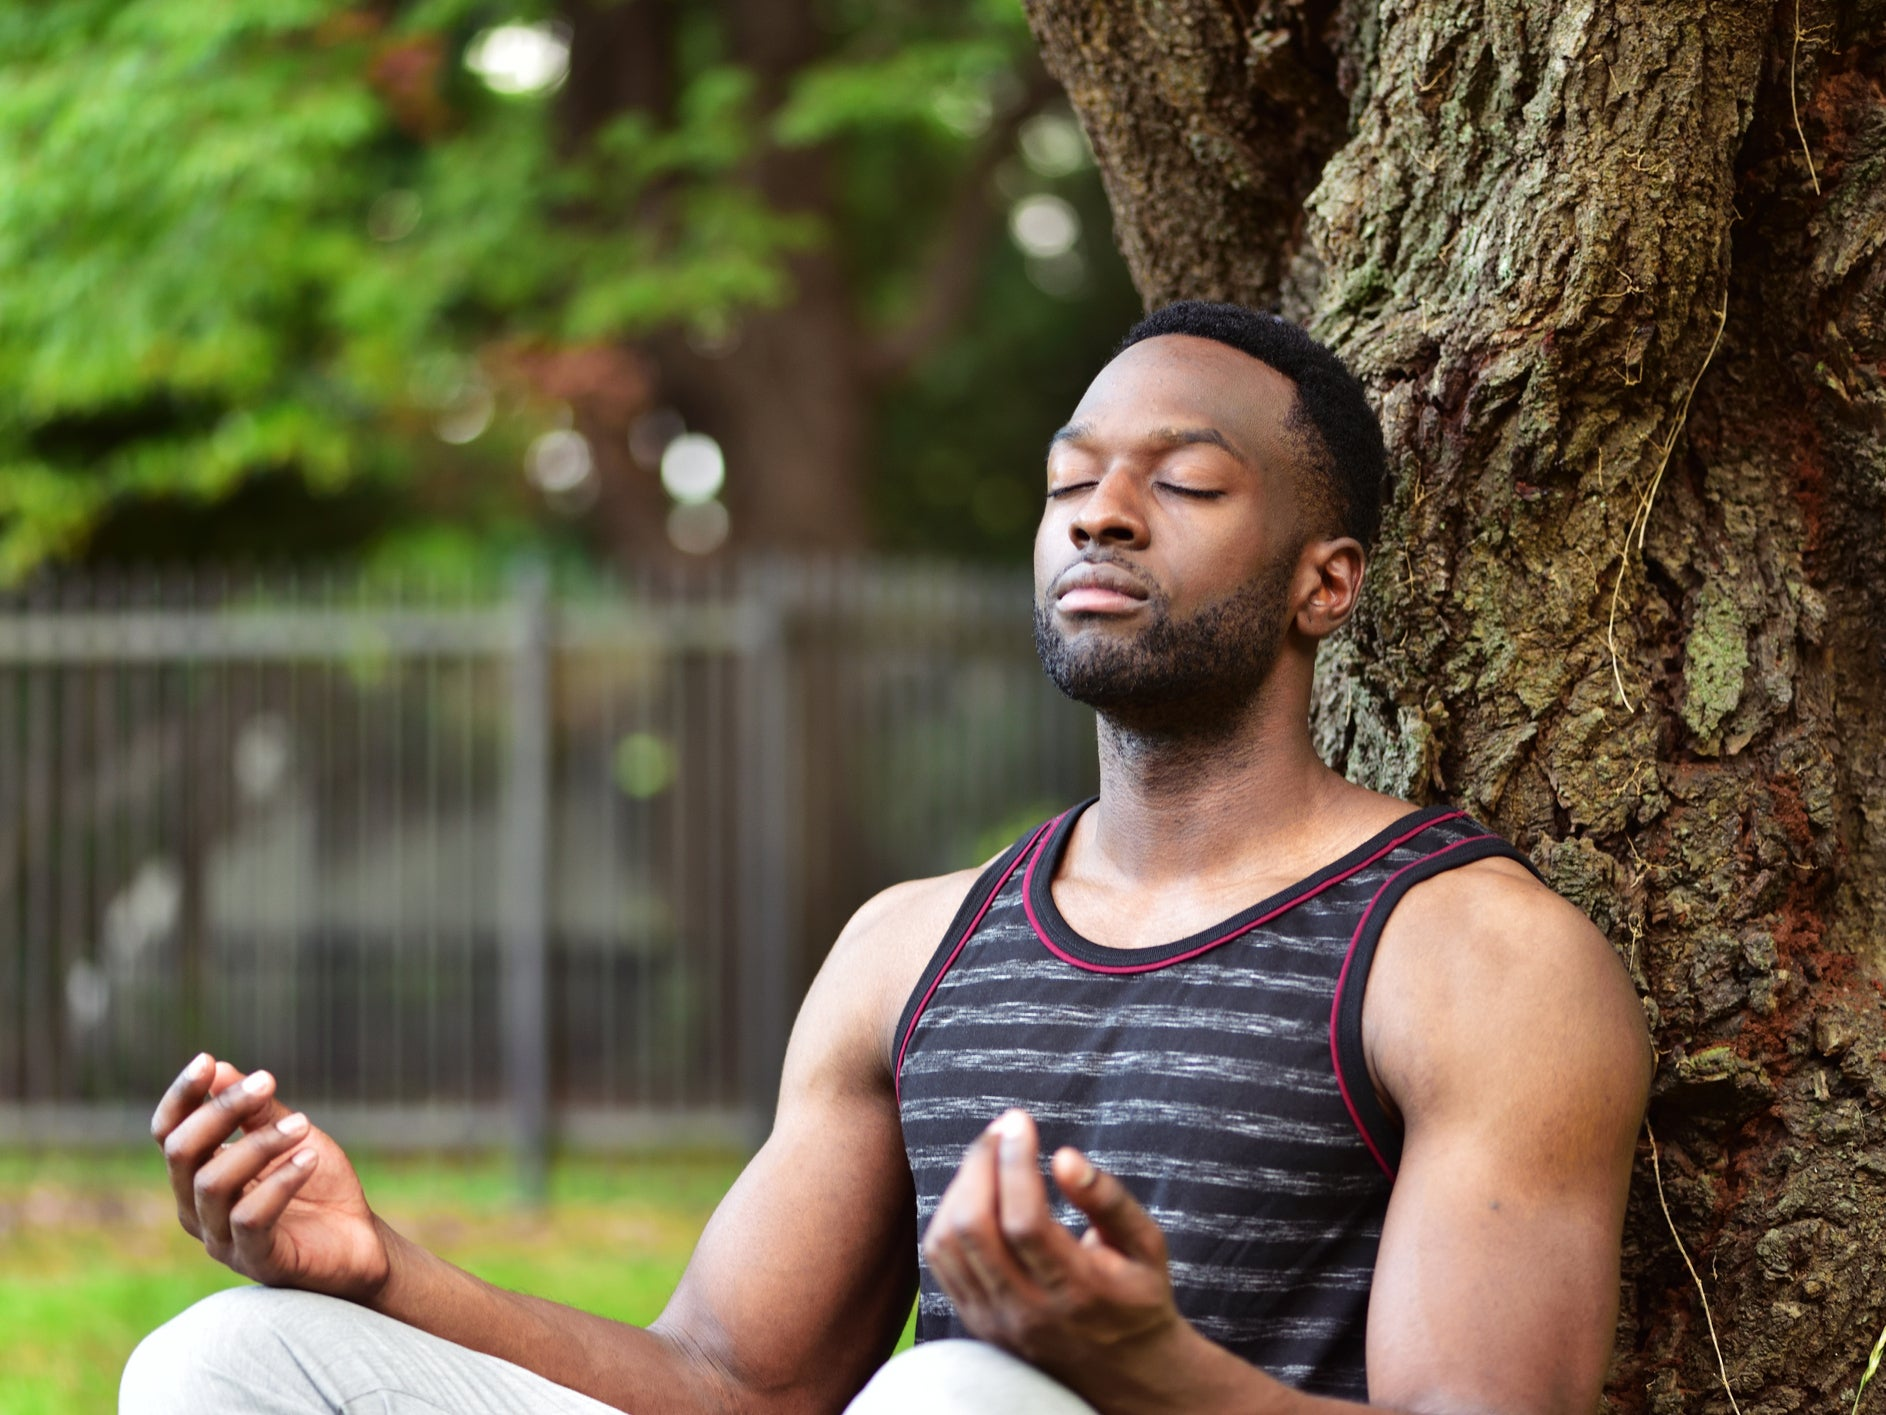 World Meditation Day 2019: How to meditate for beginners, according to experts